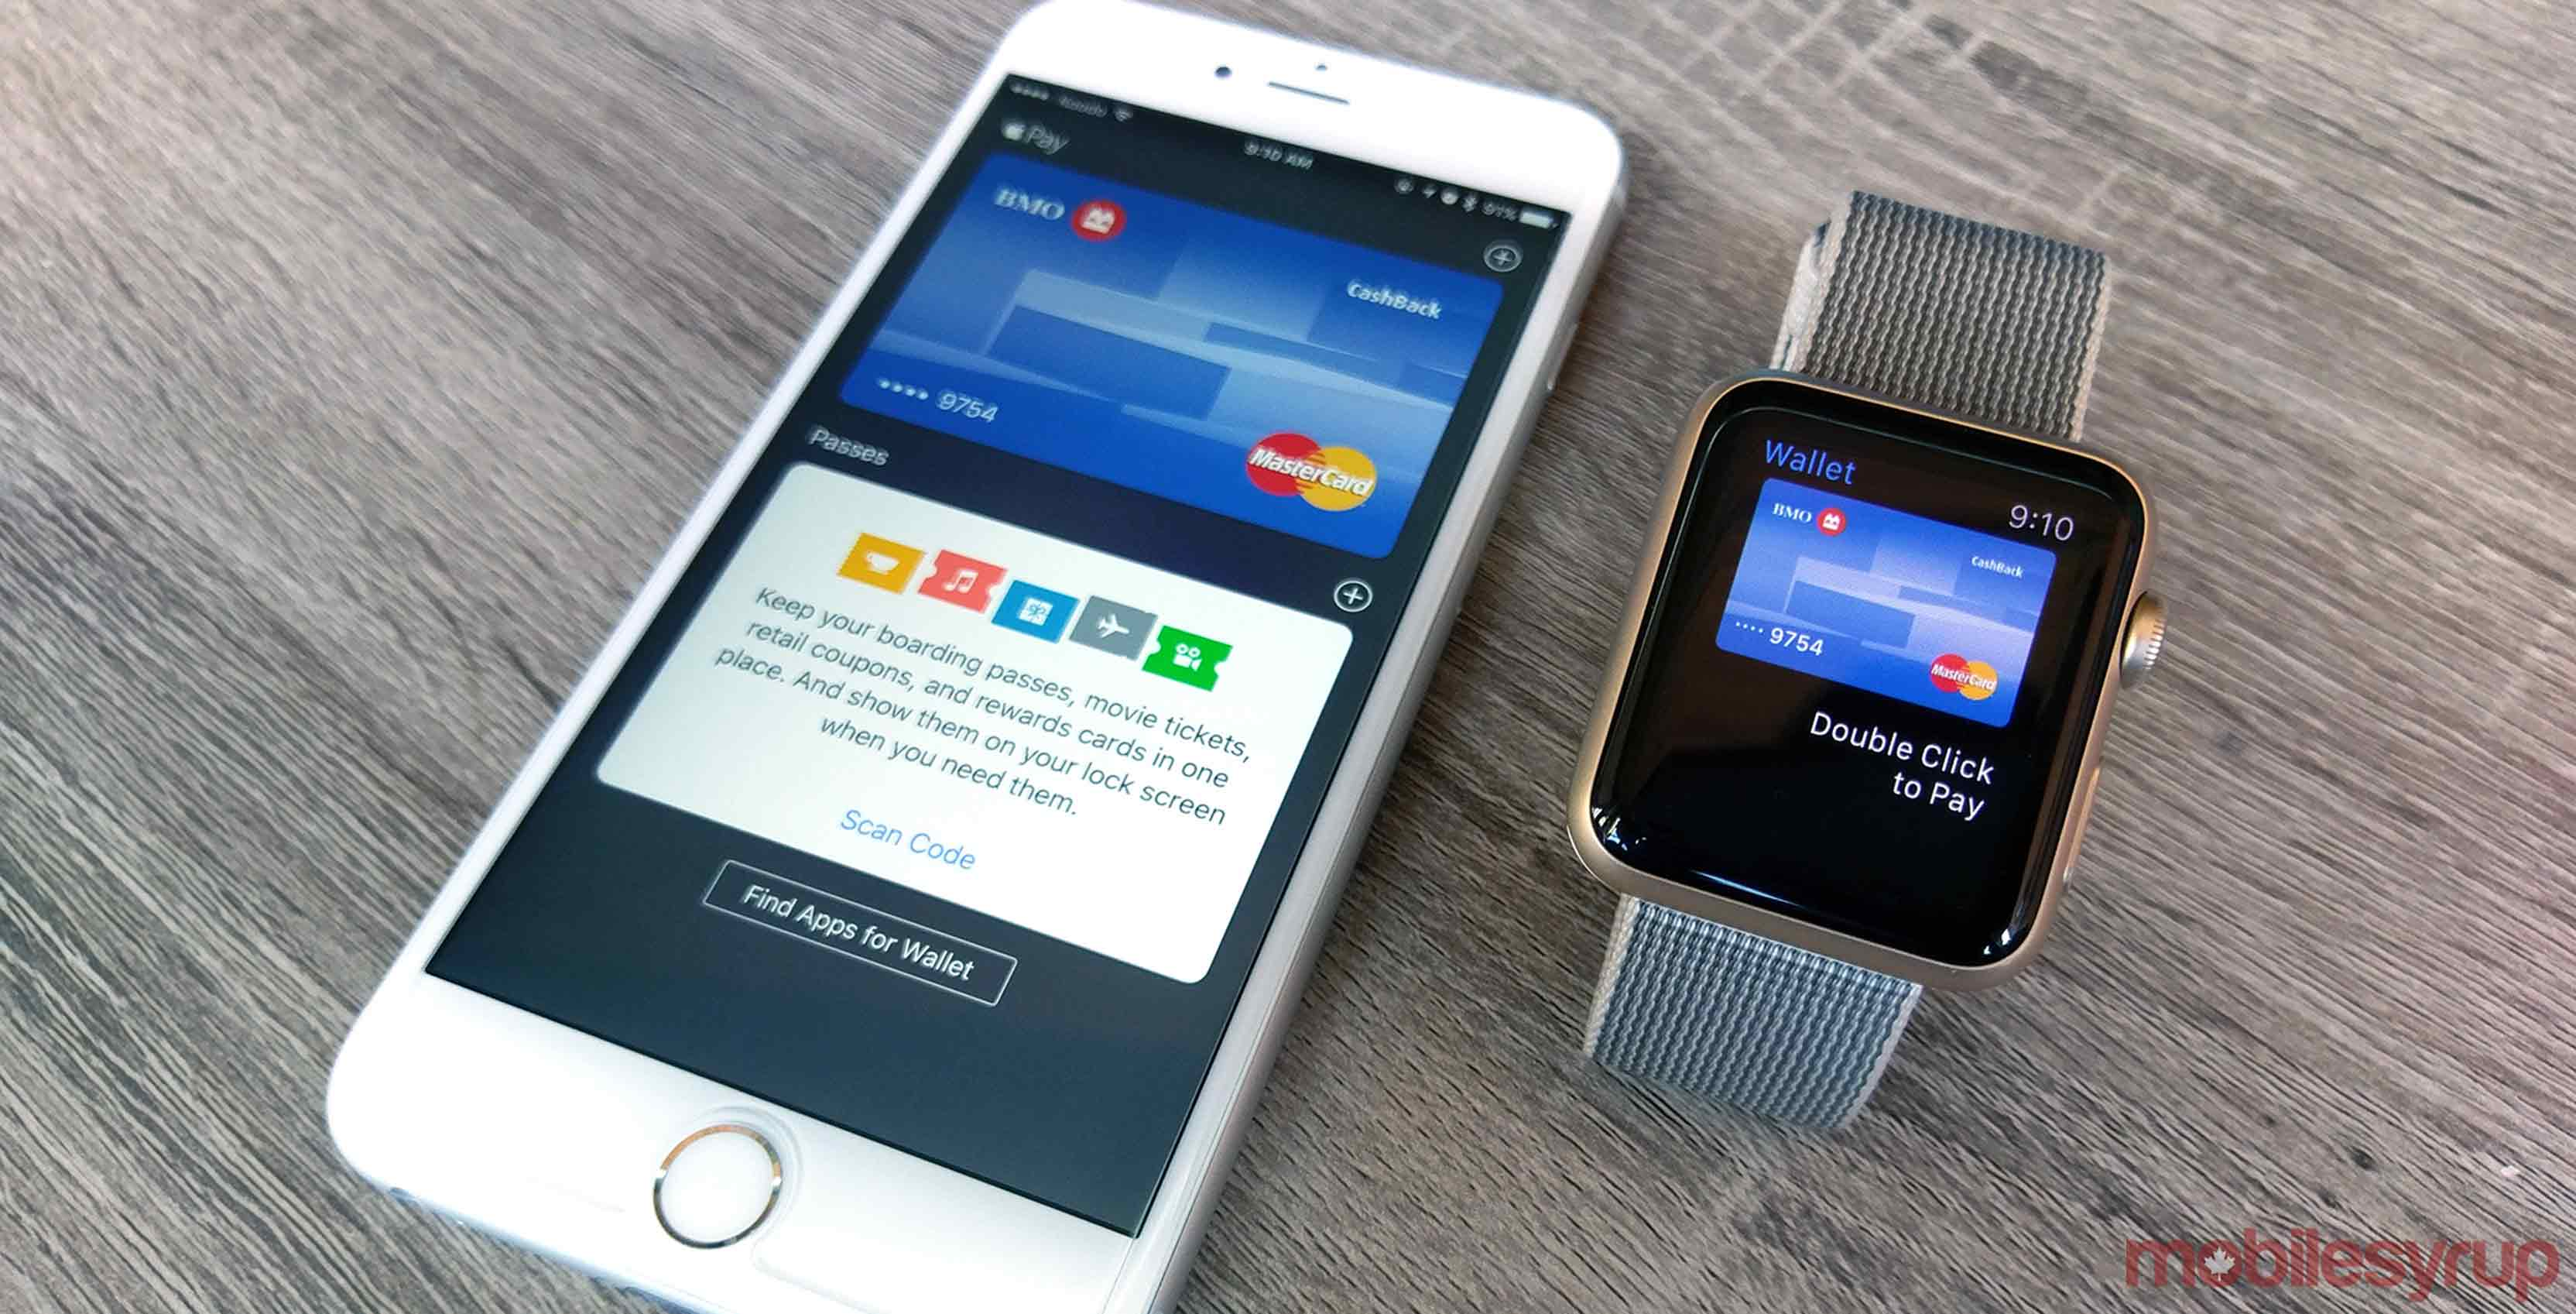 BMO Bank of Montreal card in Apple Pay